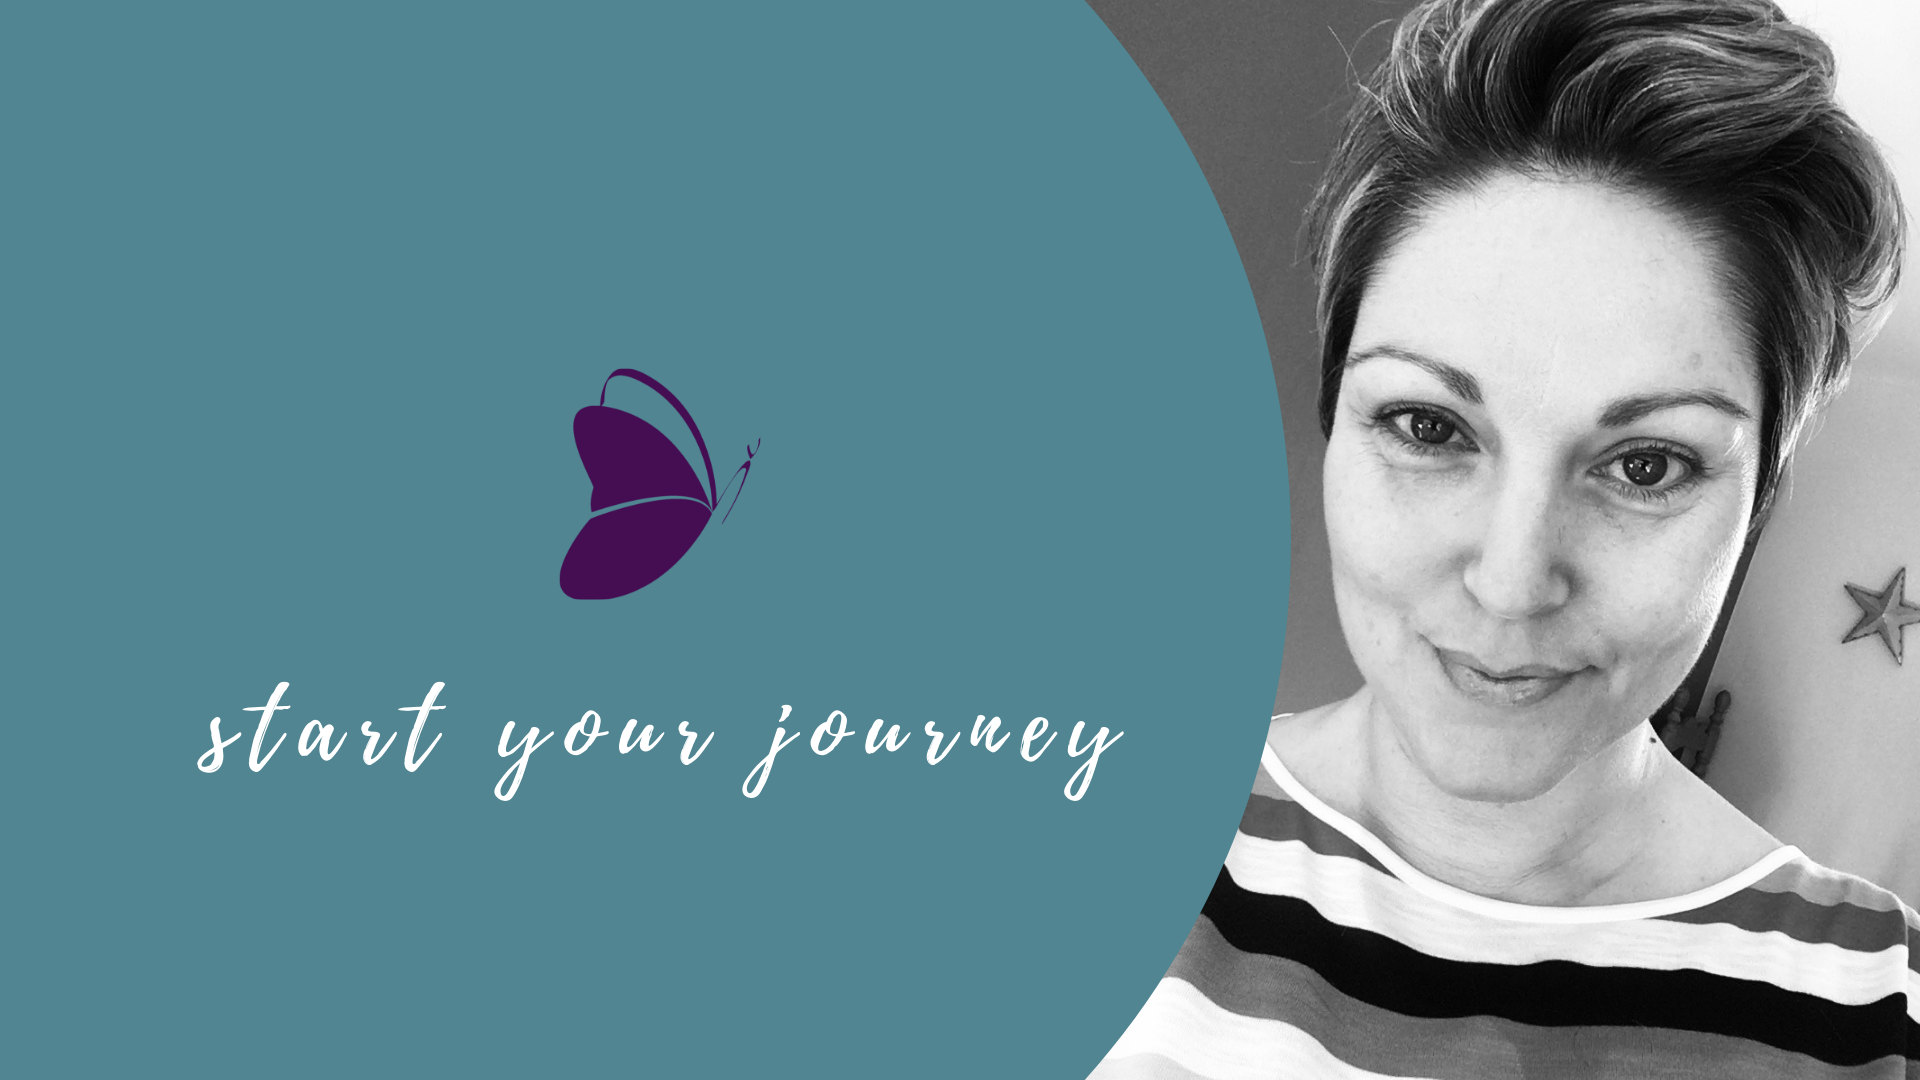 start your journey - belifehappy, emma lannigan